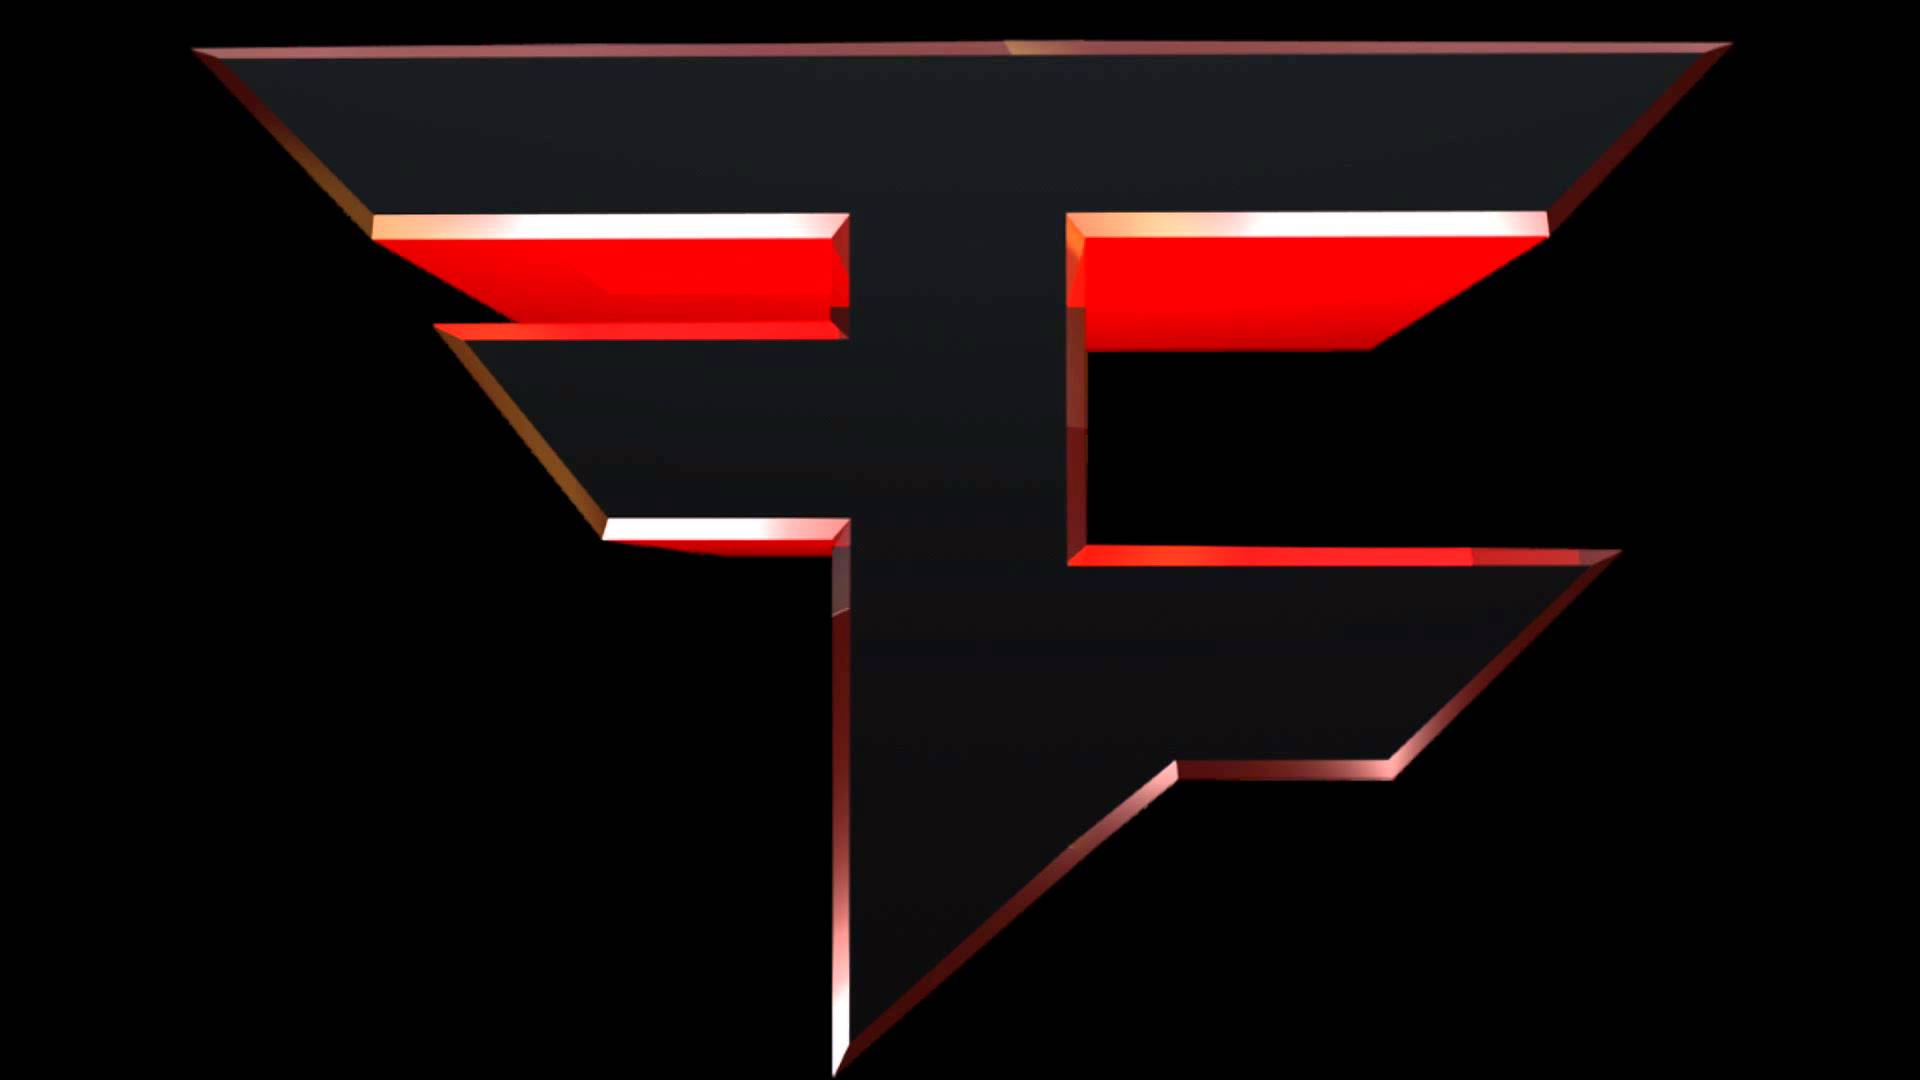 FaZe Clan Wallpapers